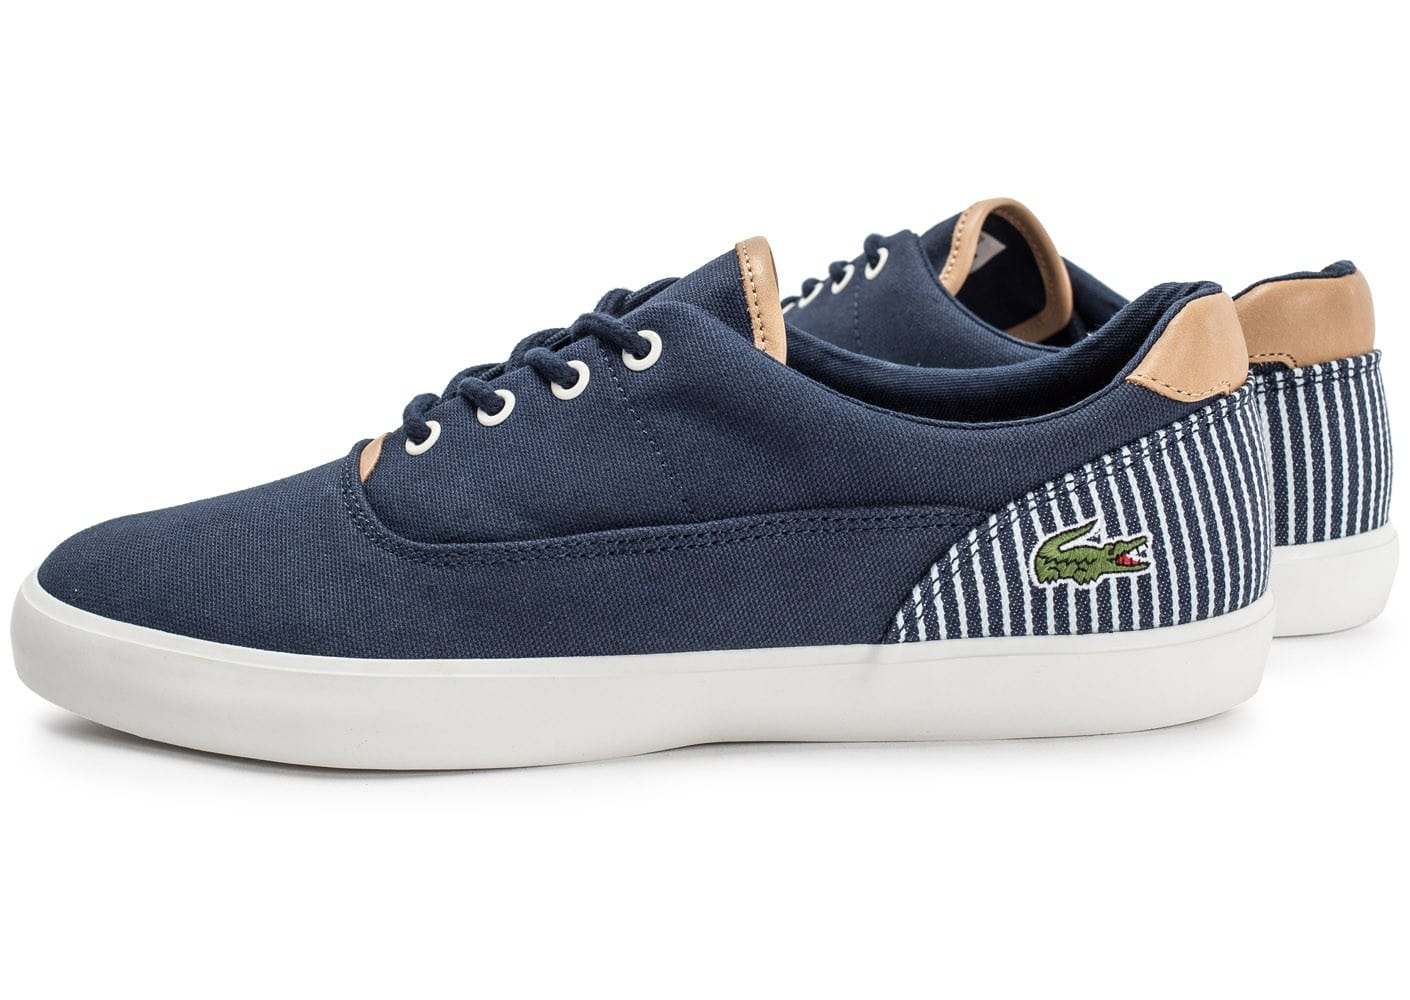 Lacoste Chaussures Jouer 117